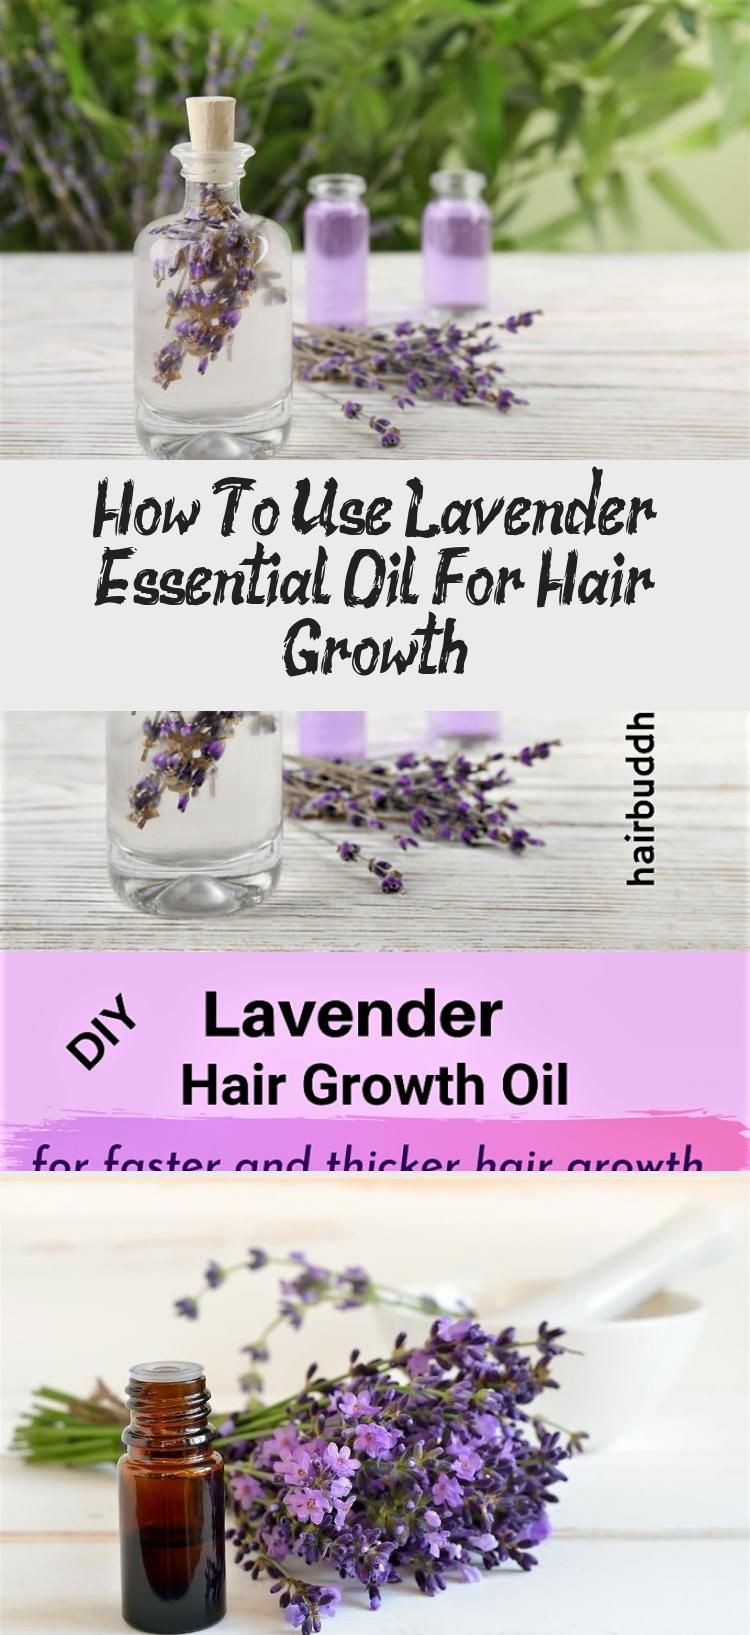 How To Use Lavender Essential Oil For Hair Growth In 2020 Hair